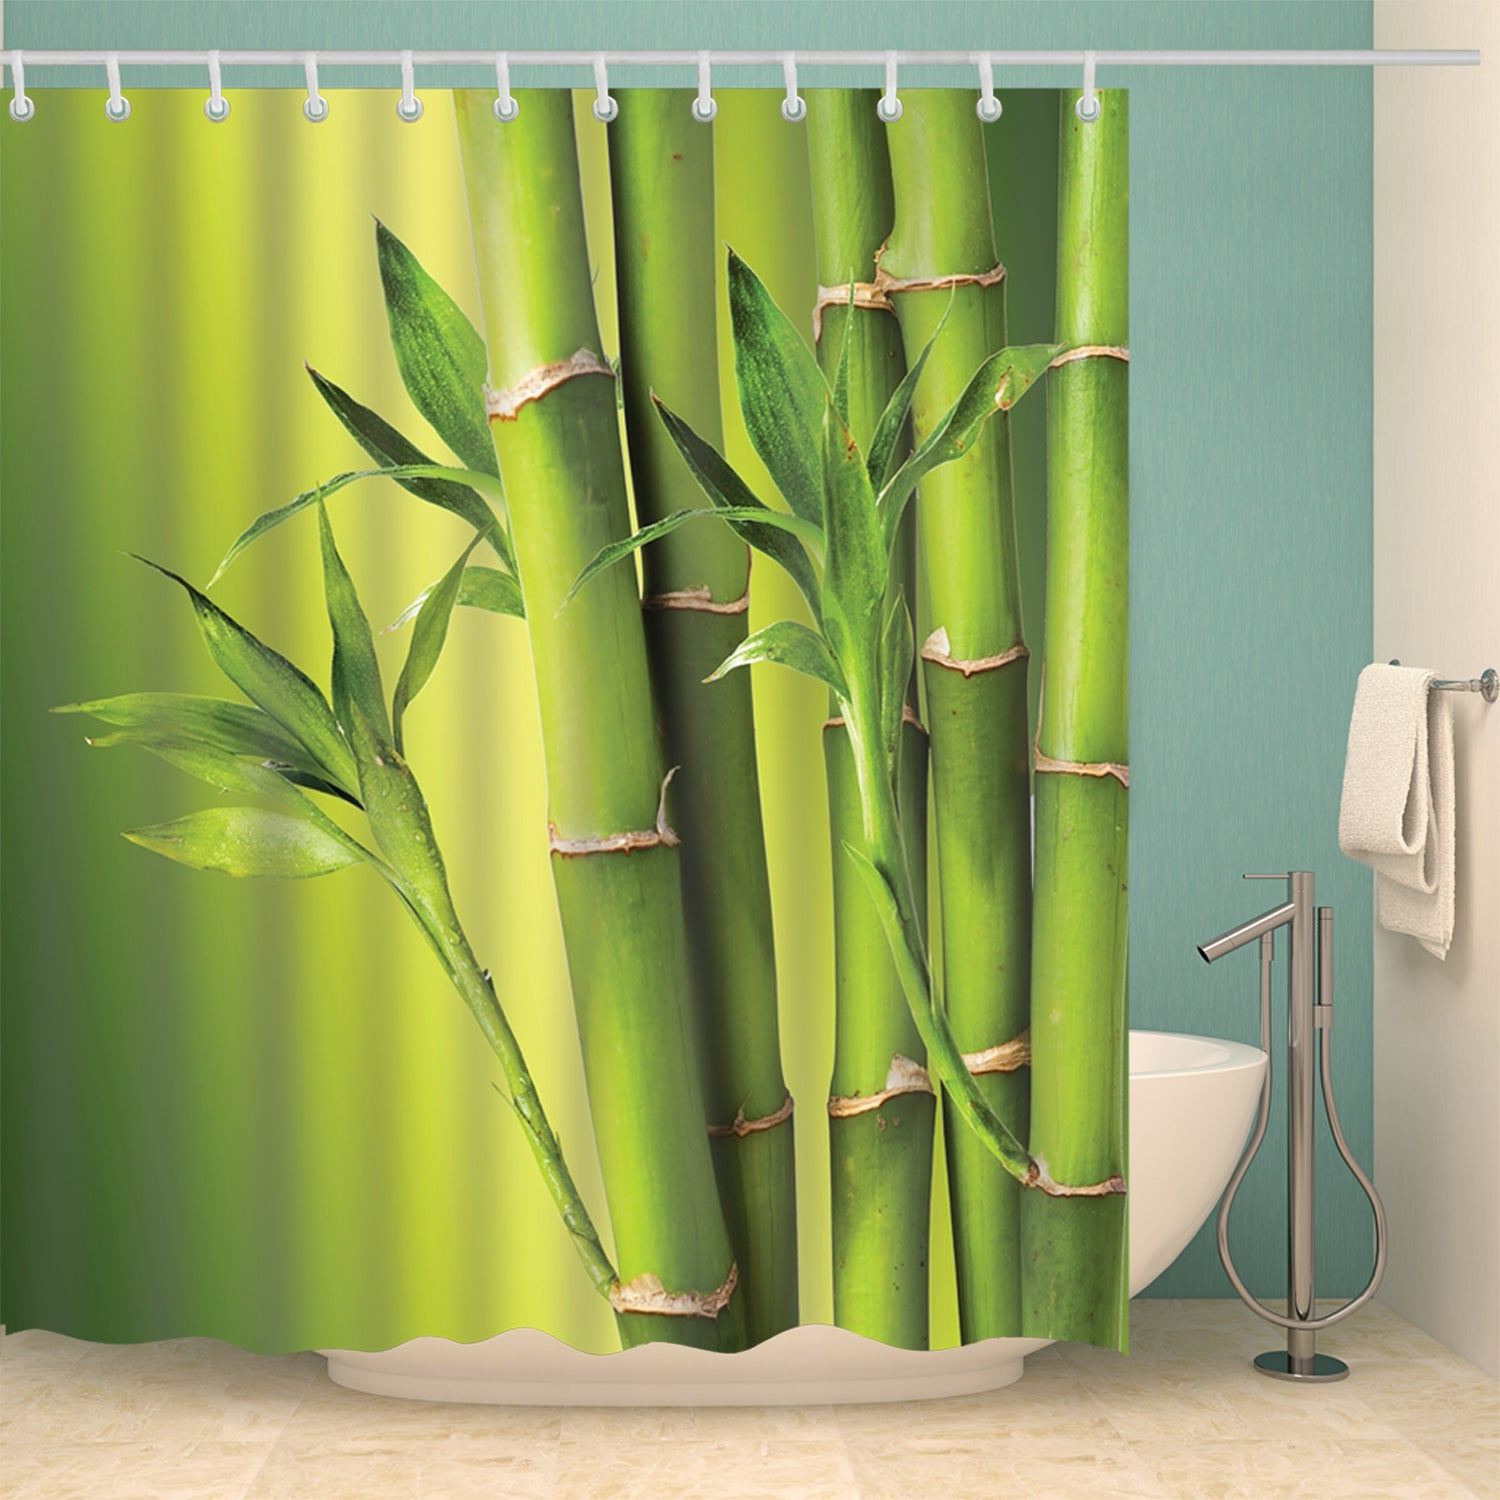 Green Nature Bamboo Theme Fabric Shower Curtain